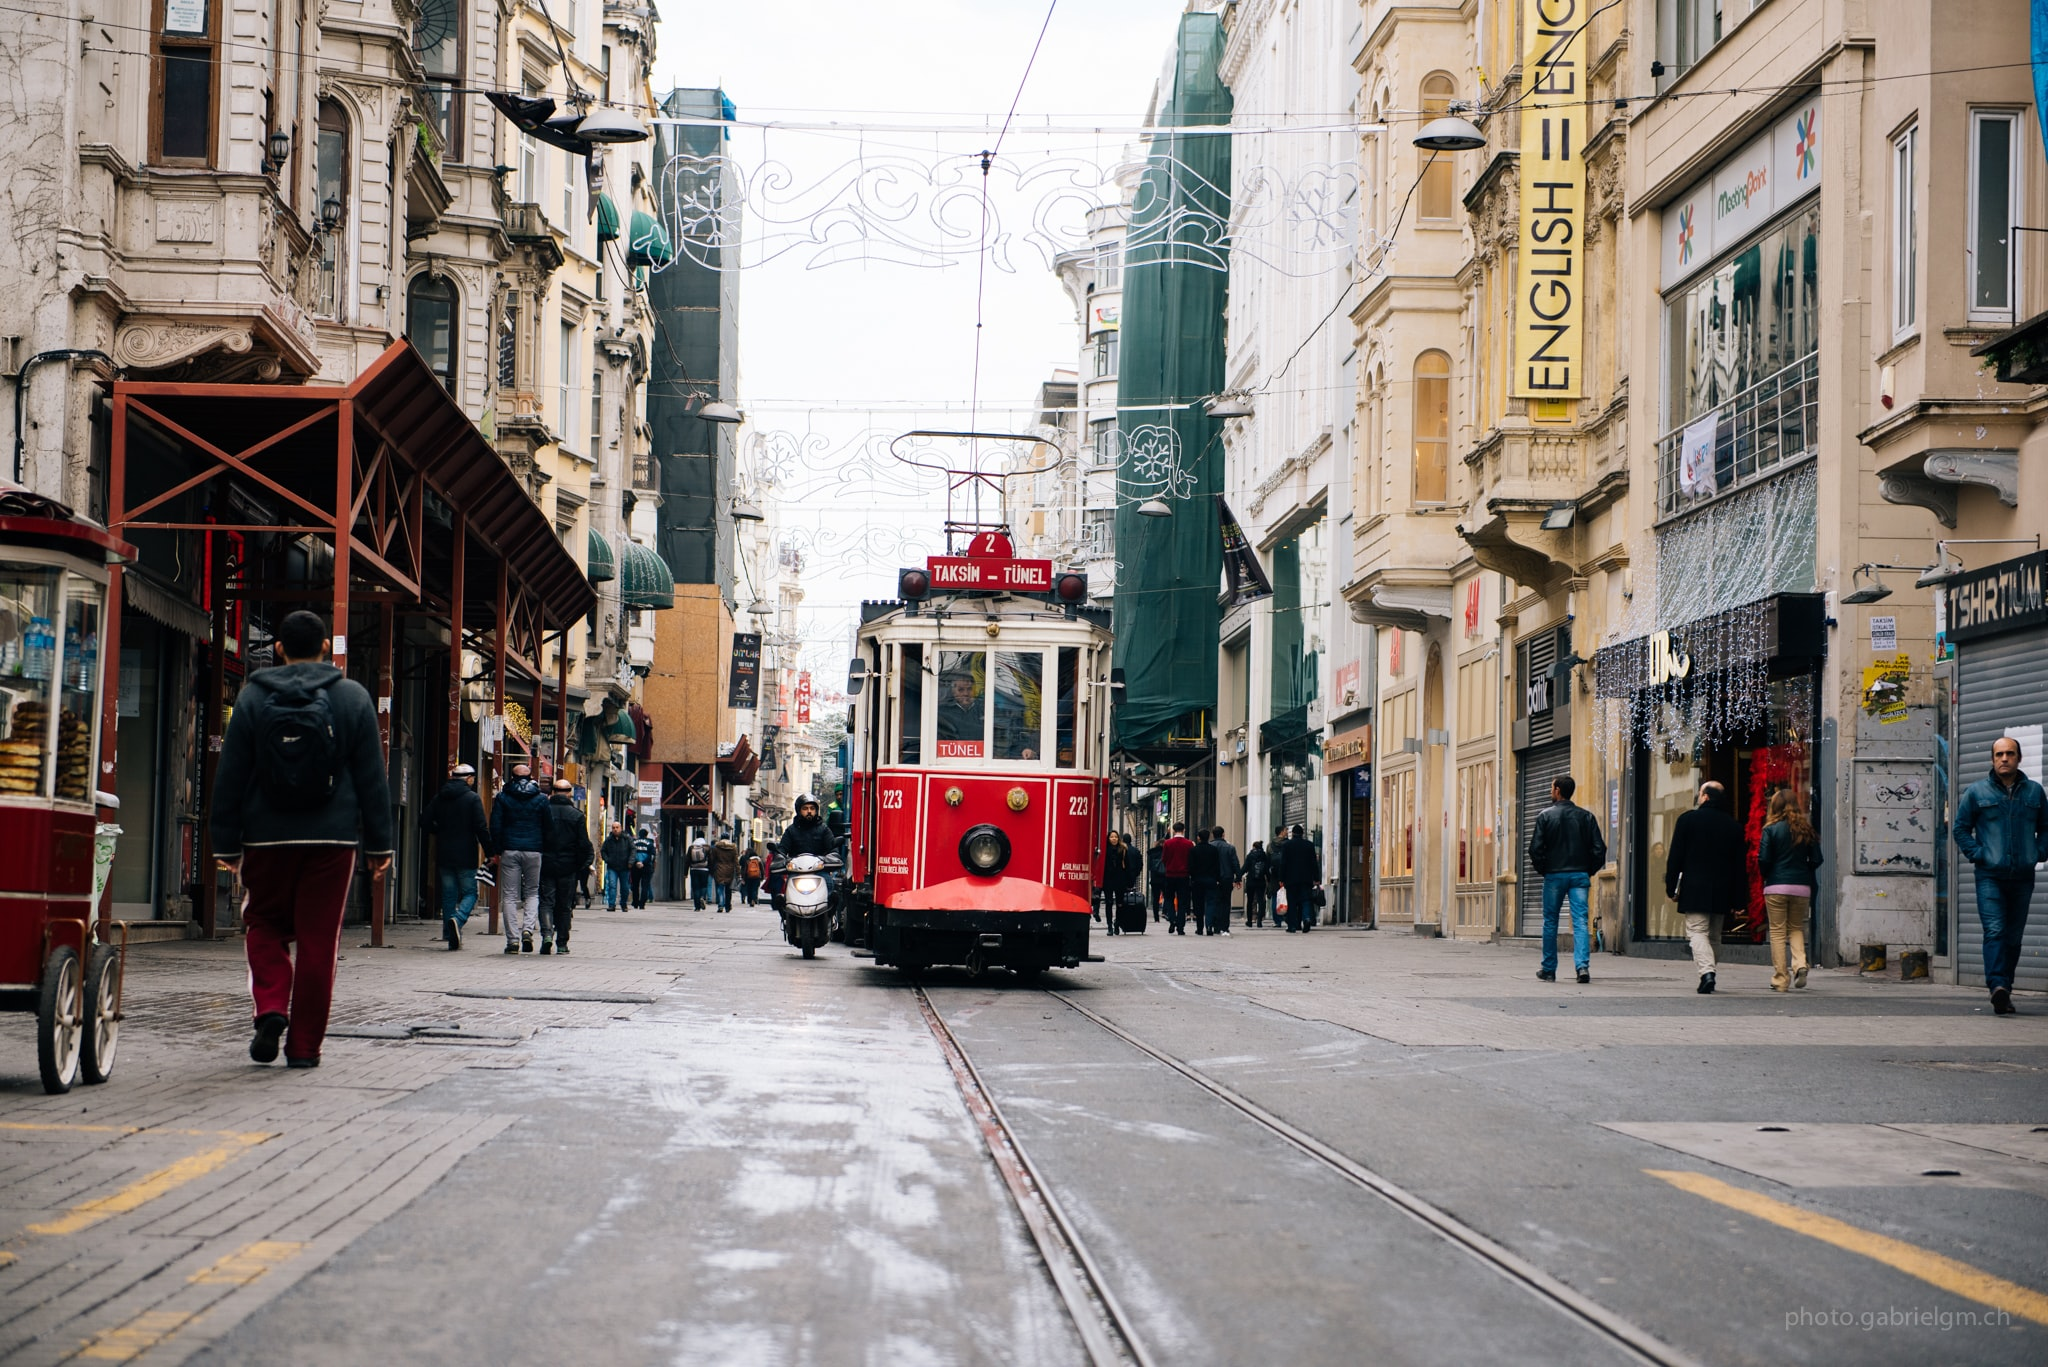 red tram near between buildings with person walking during daytime